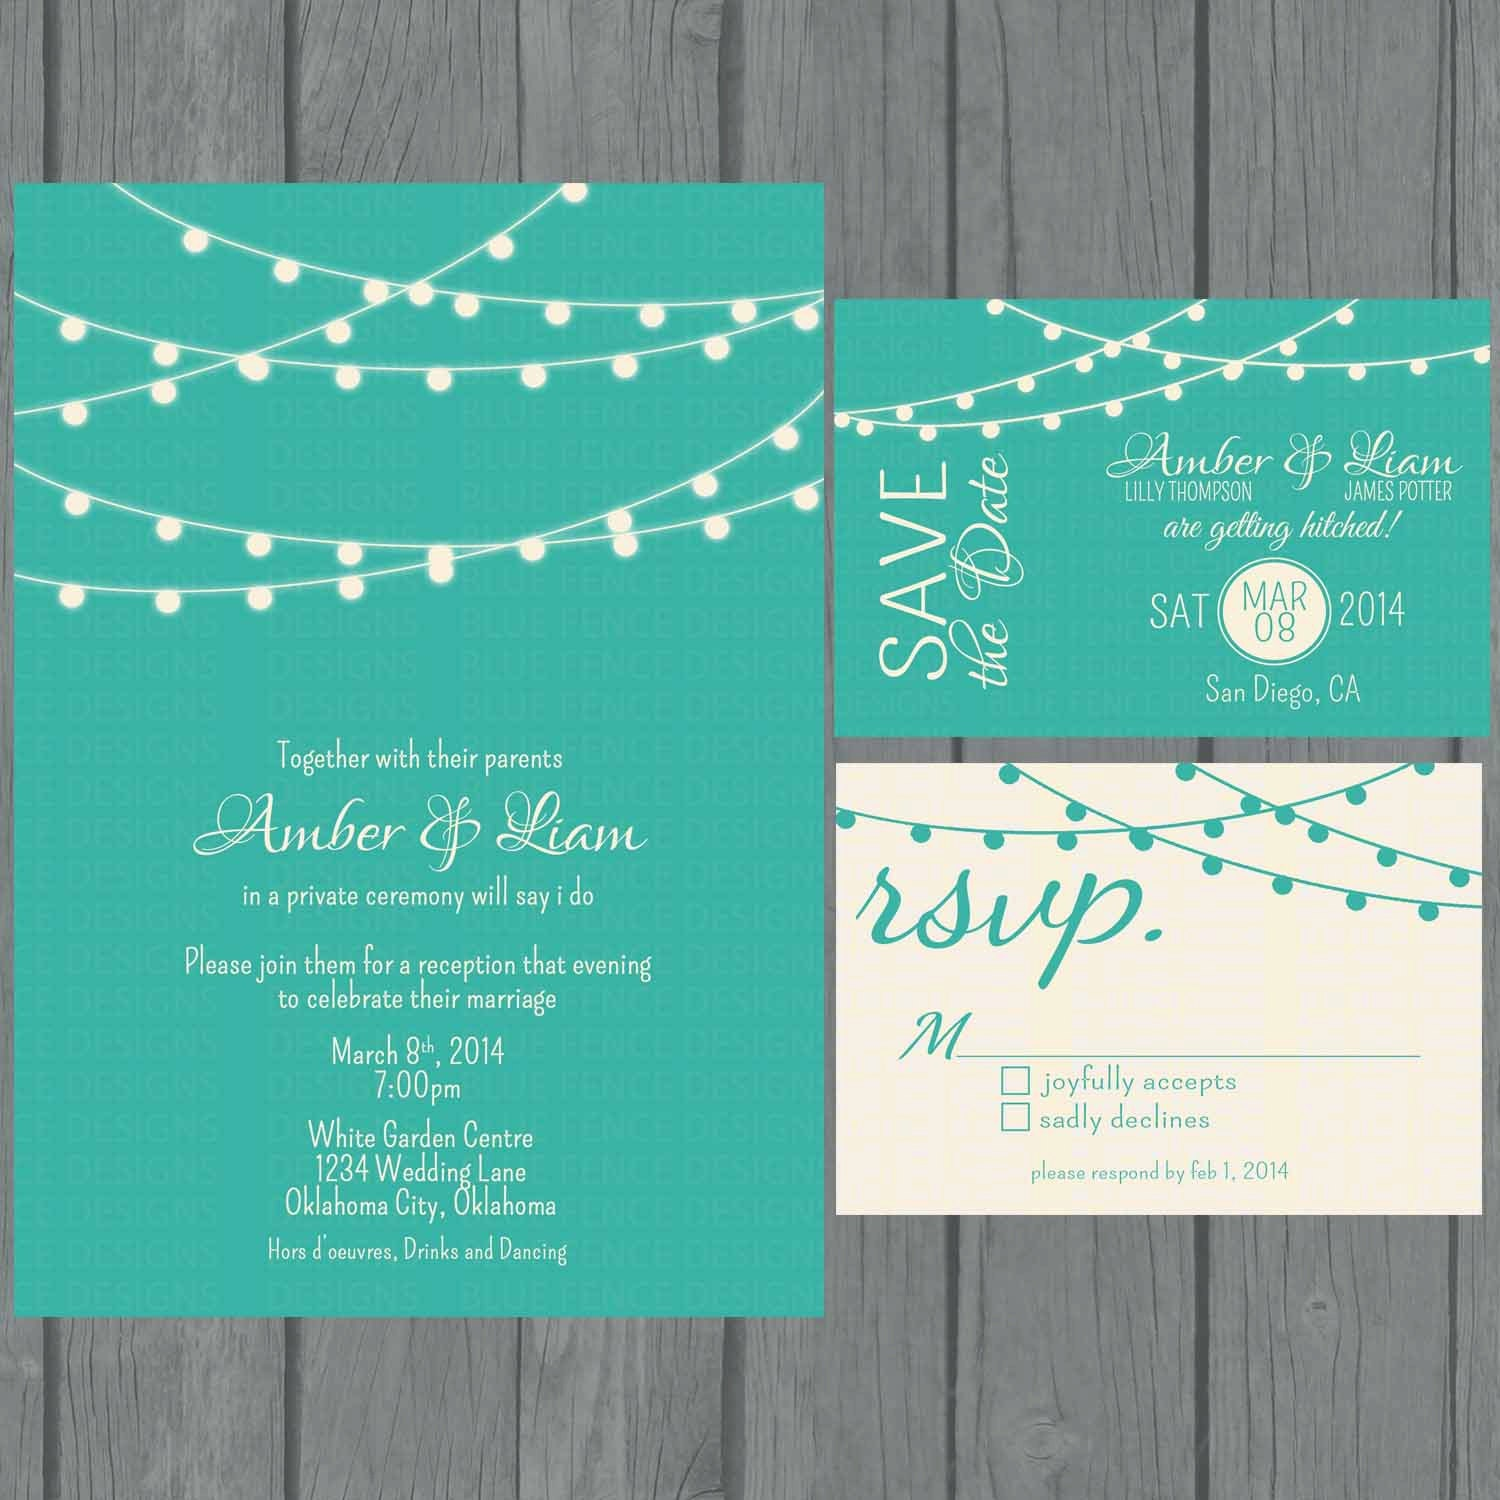 Digital string lights wedding invitation teal non zoom monicamarmolfo Images